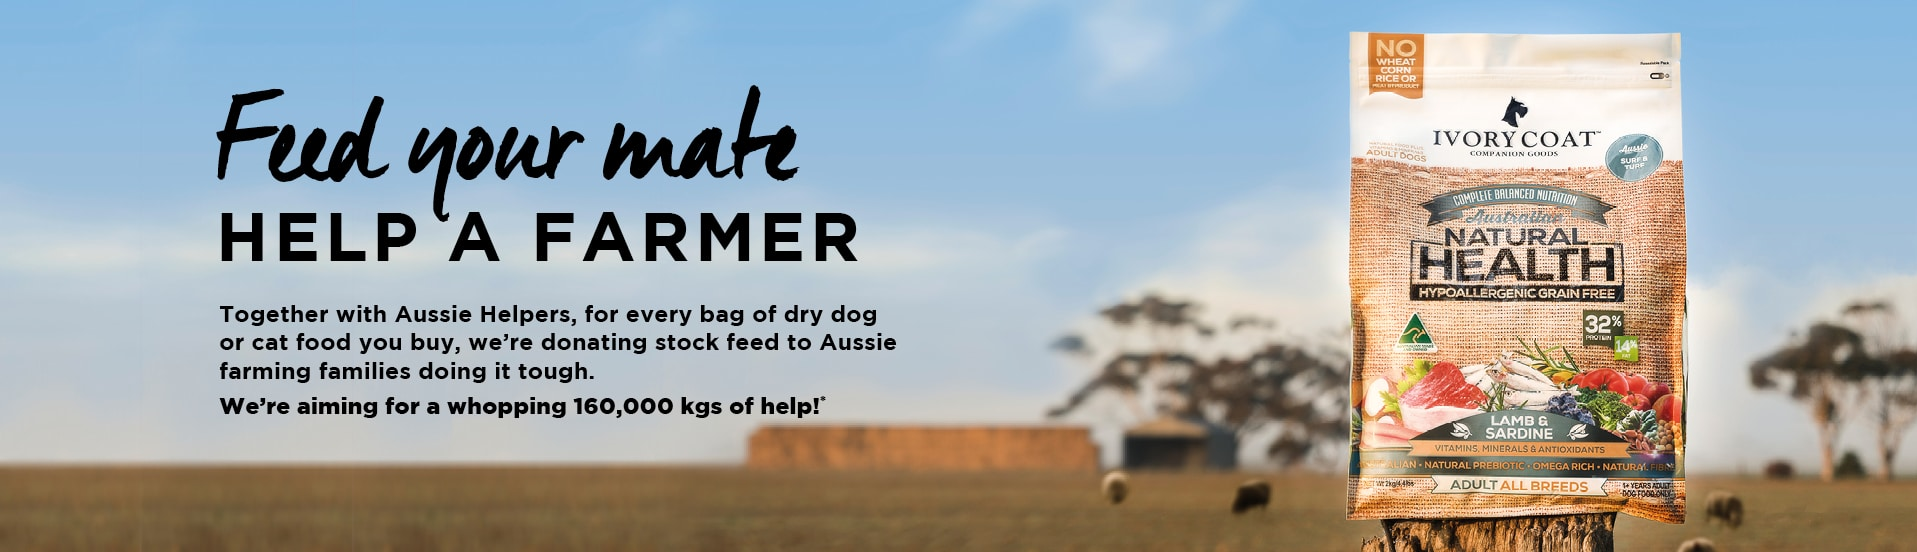 IVORY COAT LAUNCHES 'OUTBACK GIVEBACK' CHARITABLE CAMPAIGN WITH AUSSIE HELPERS